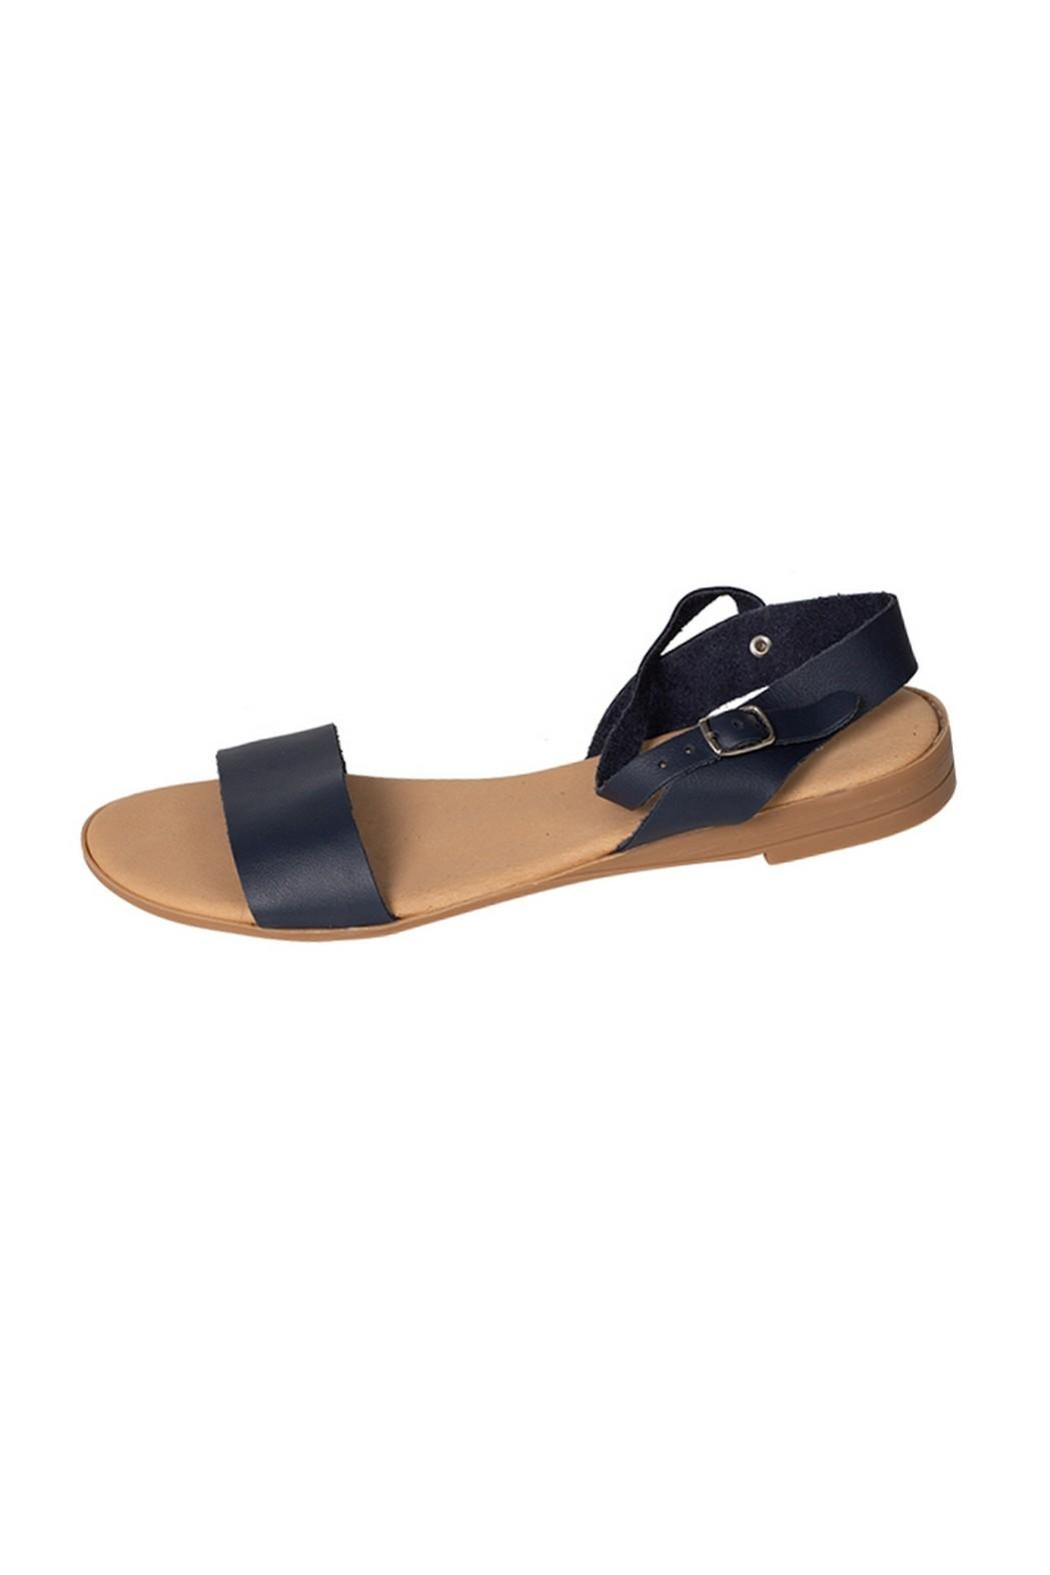 Firenze Navy Leather Sandal - Main Image